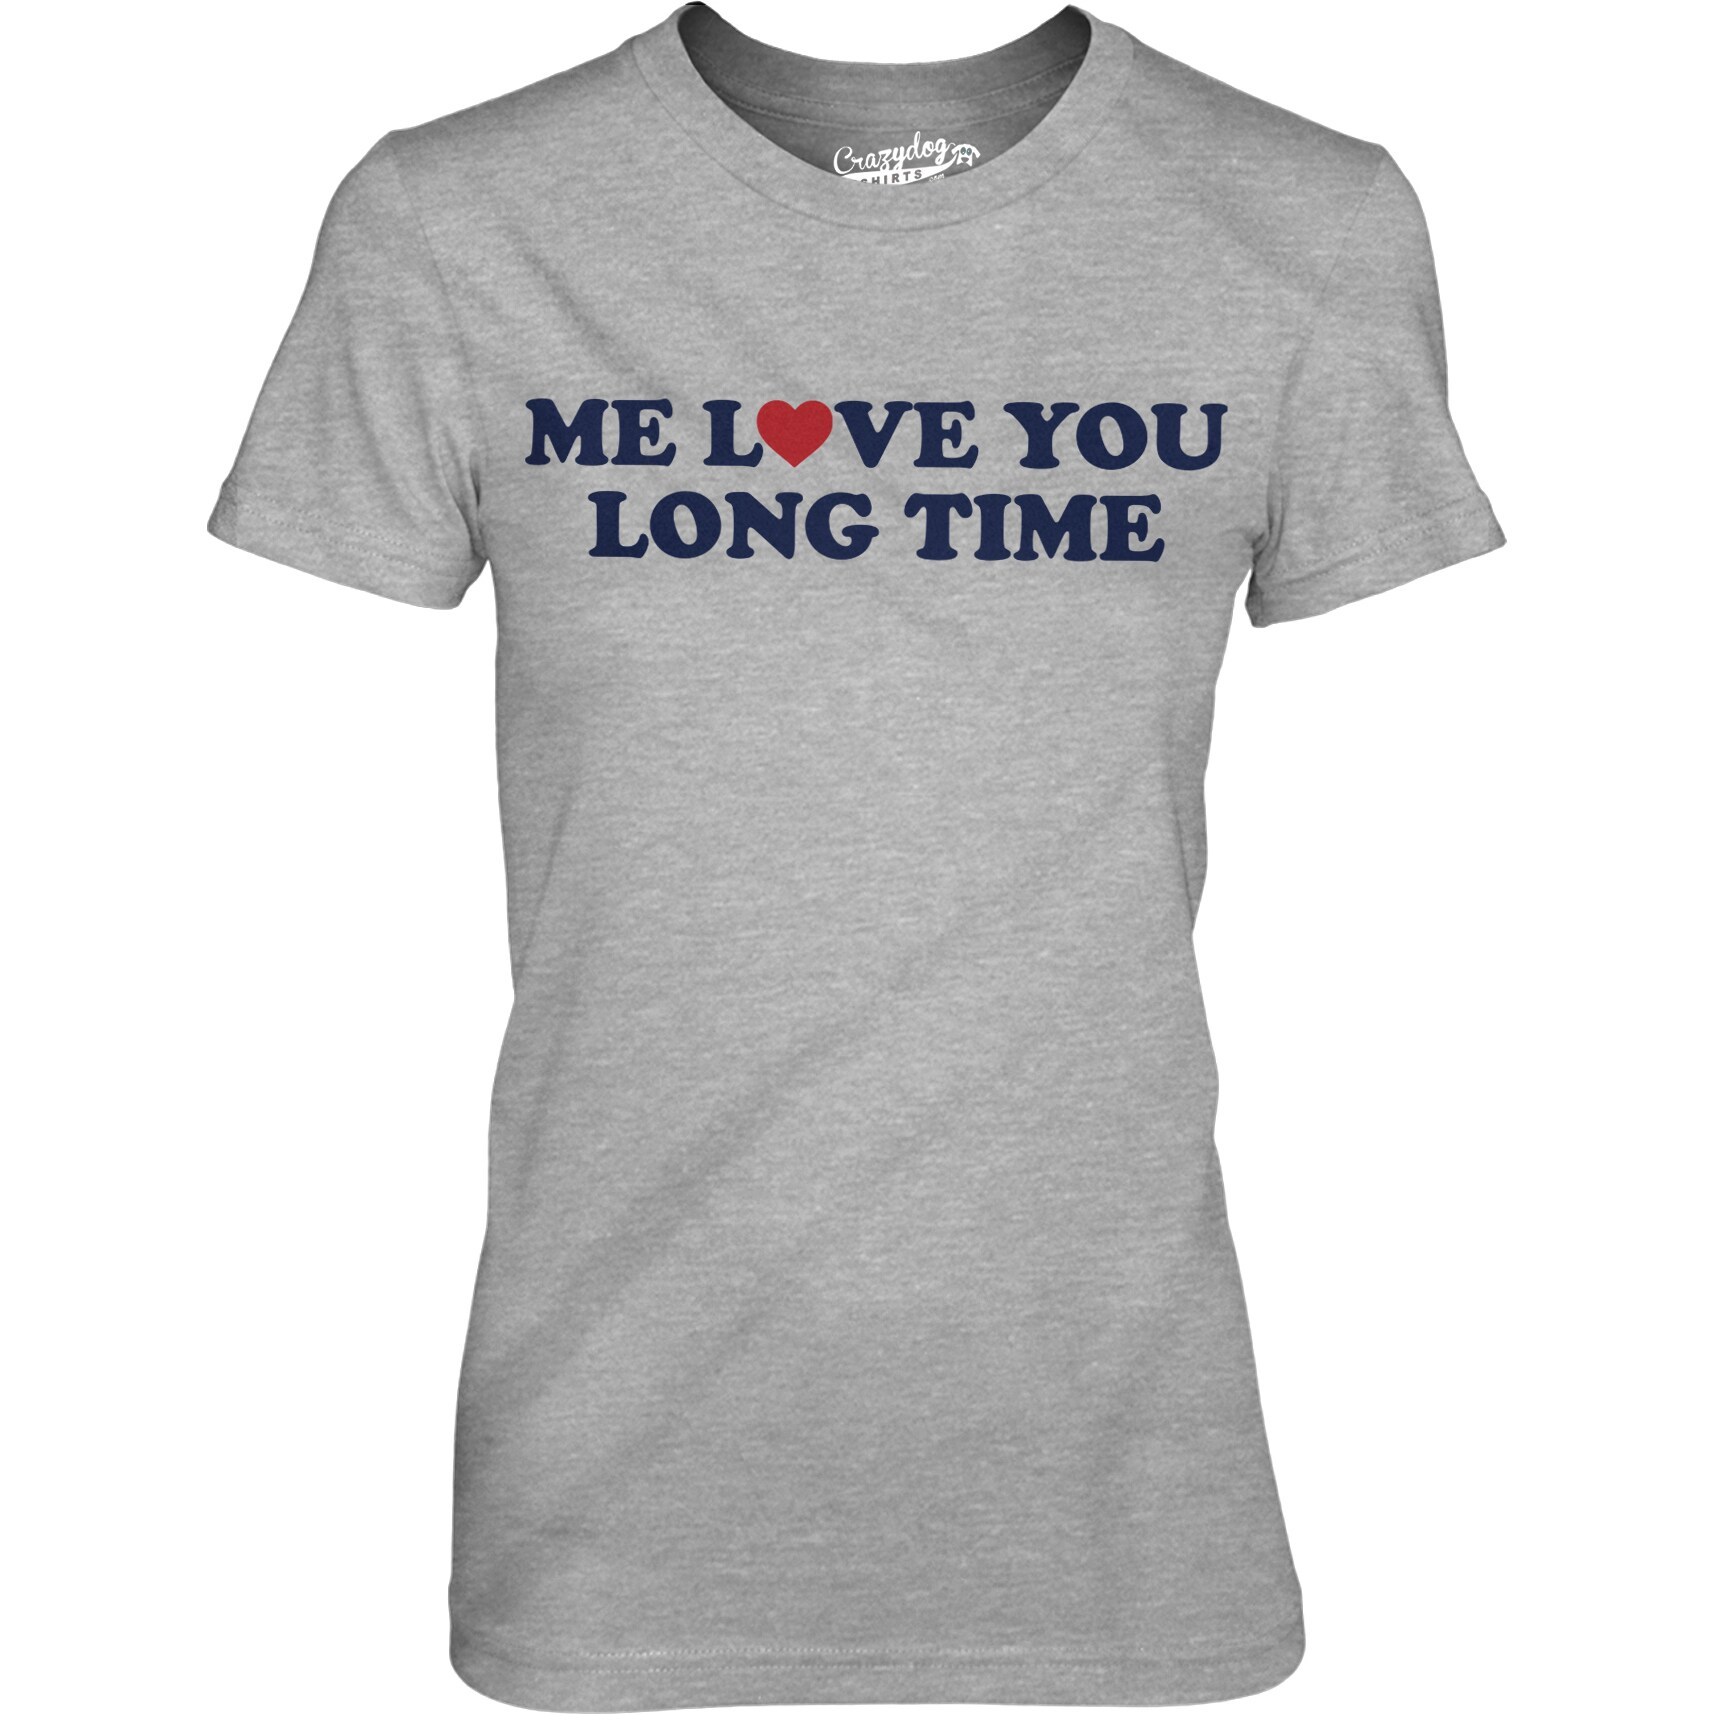 9aa9019866 Shop Womens Me Love You Long Time Tshirt - Free Shipping On Orders Over $45  - Overstock - 18657986